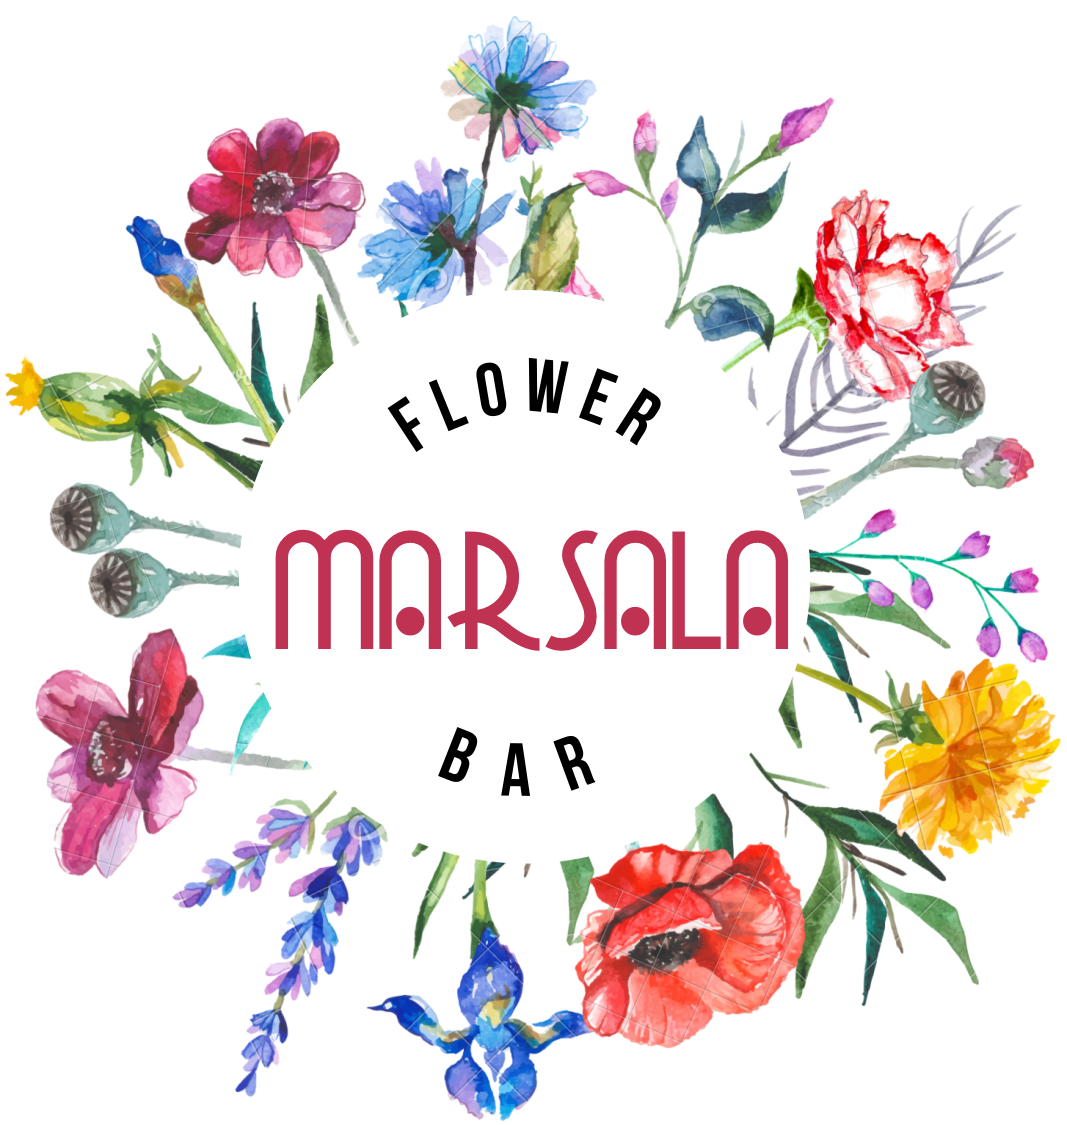 Marsala Flower Bar